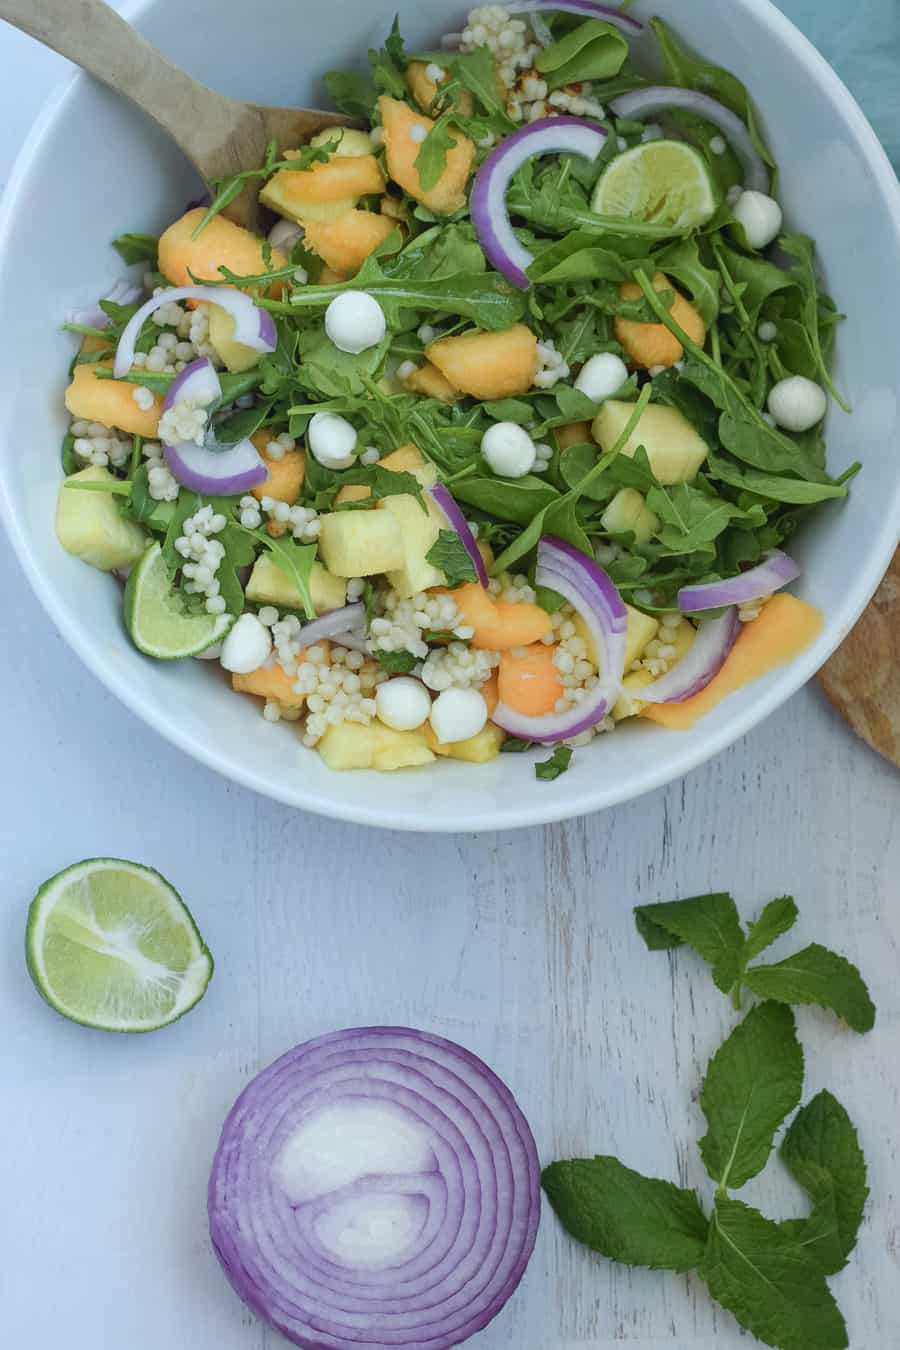 Pineapple mint cous cous salad served in white serving bowl with side of lime and mint